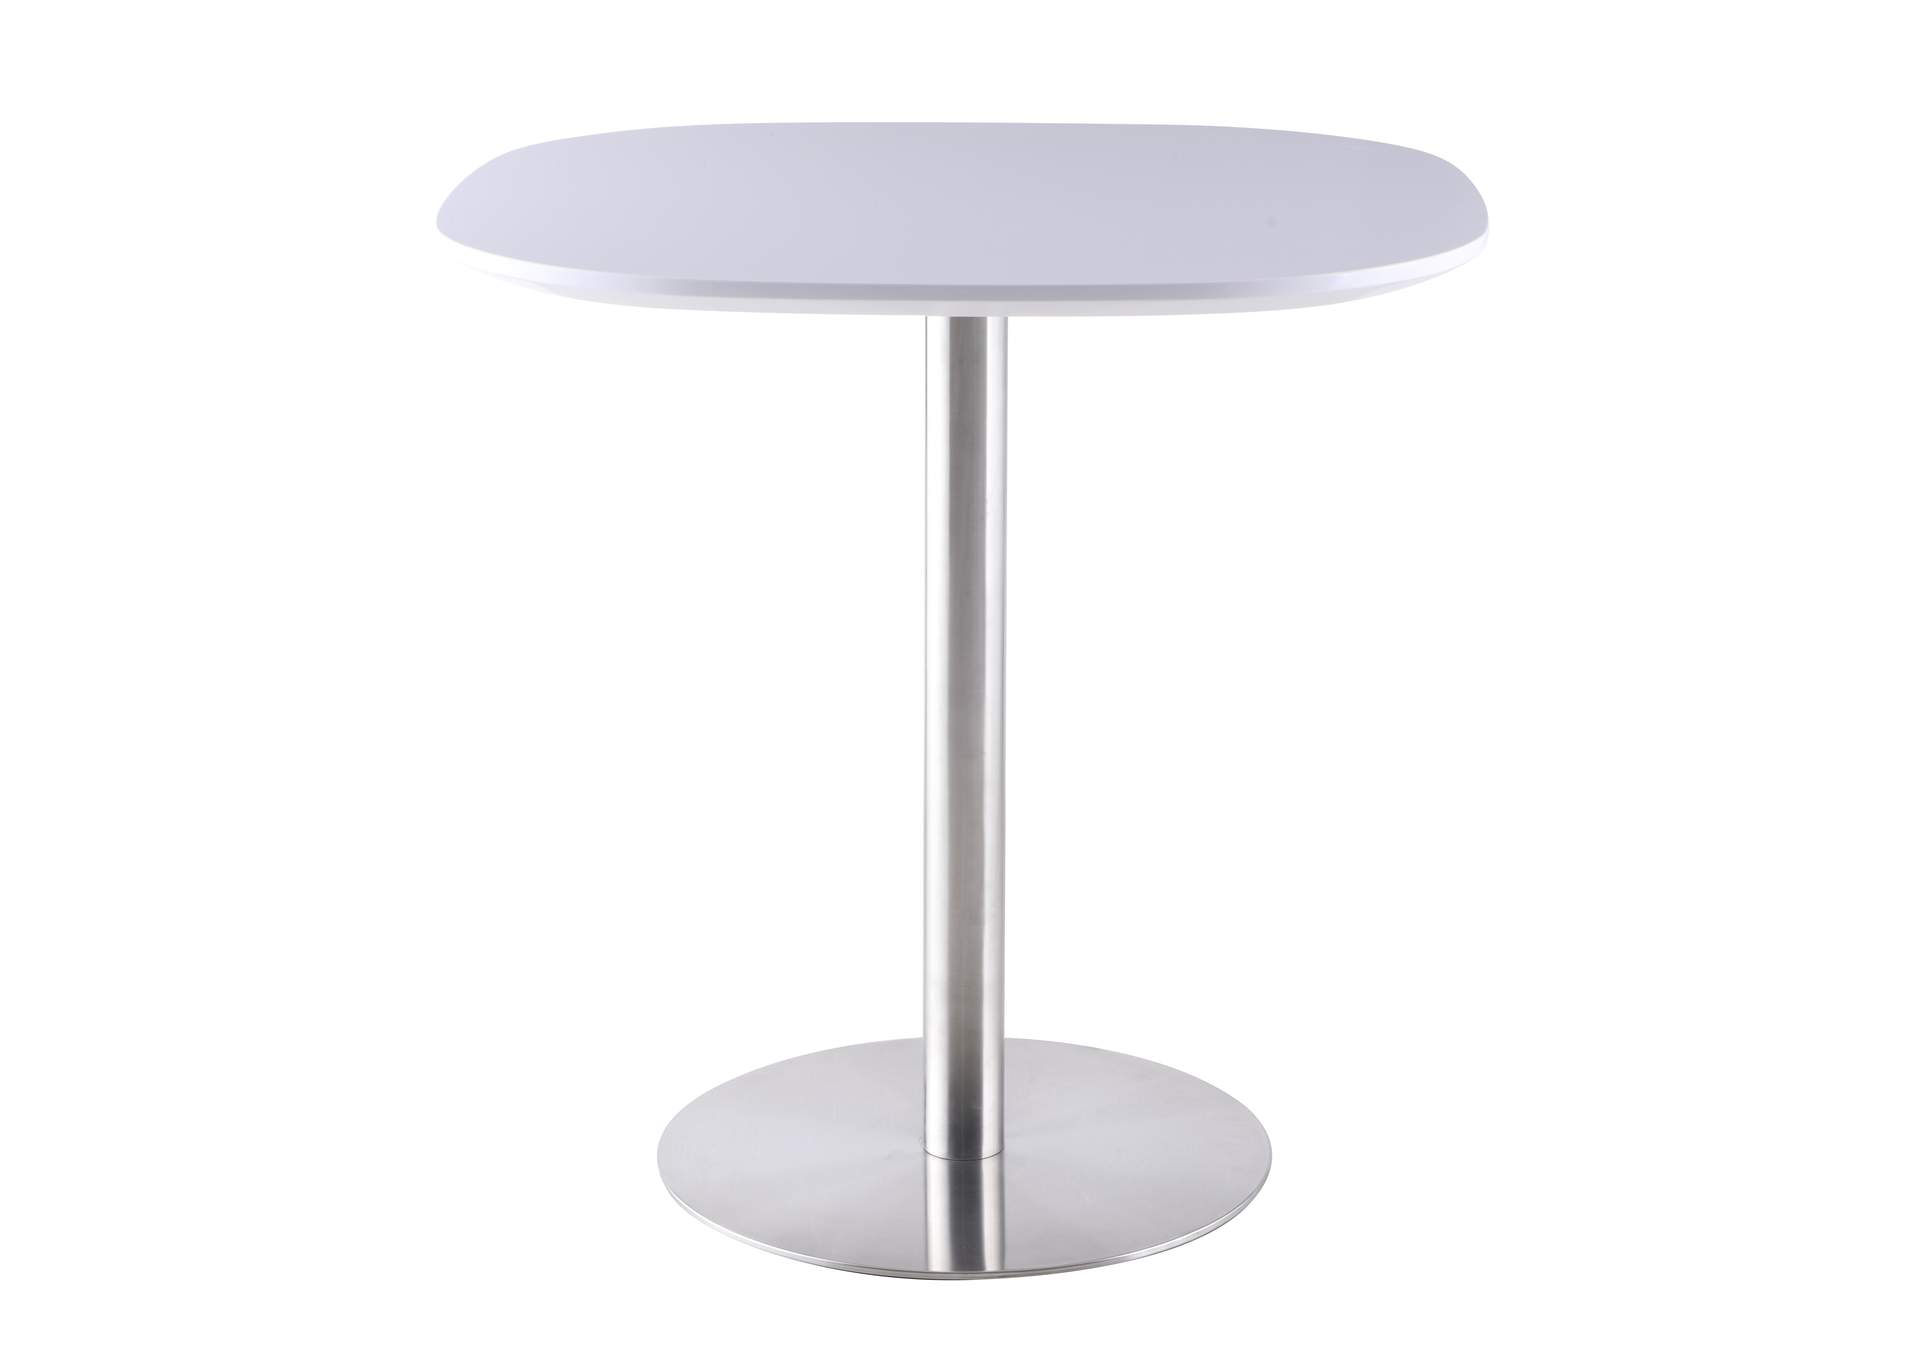 Aimee White Counter Height Dining Table,Chintaly Imports